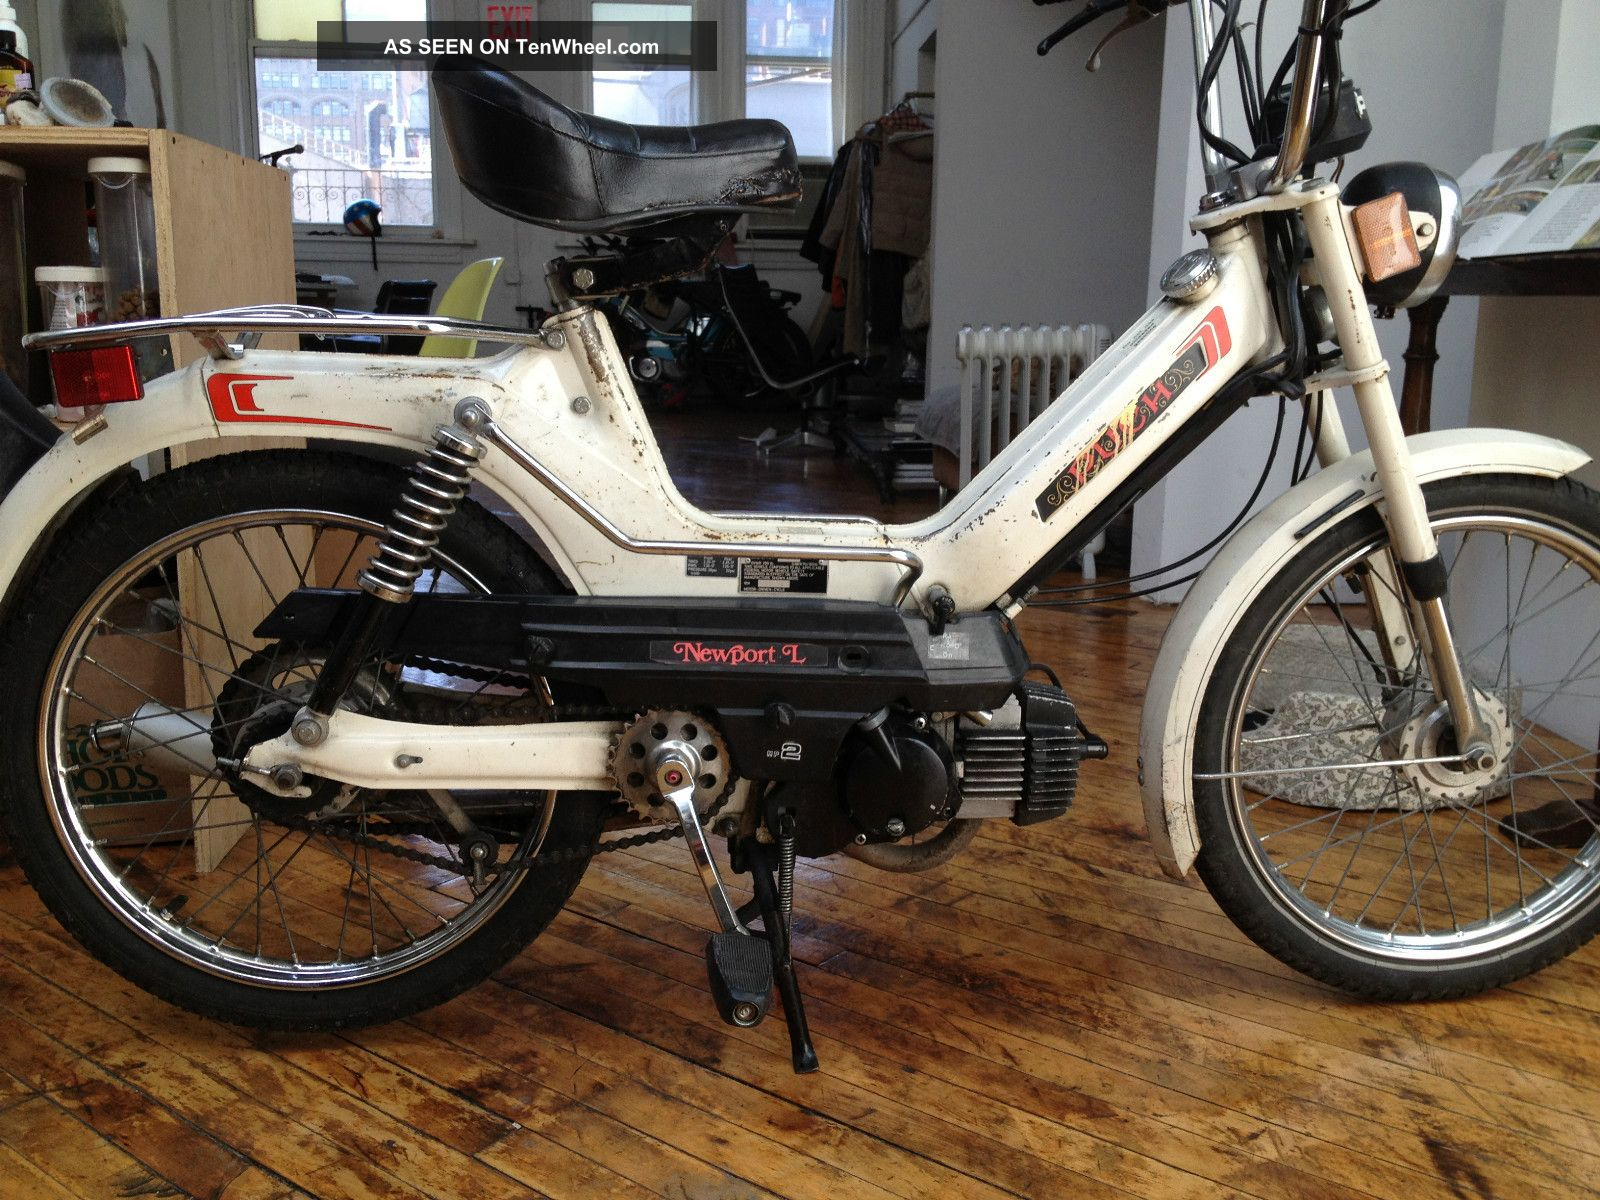 70cc 1978 Puch Newport - 45mph Screamer Other Makes photo